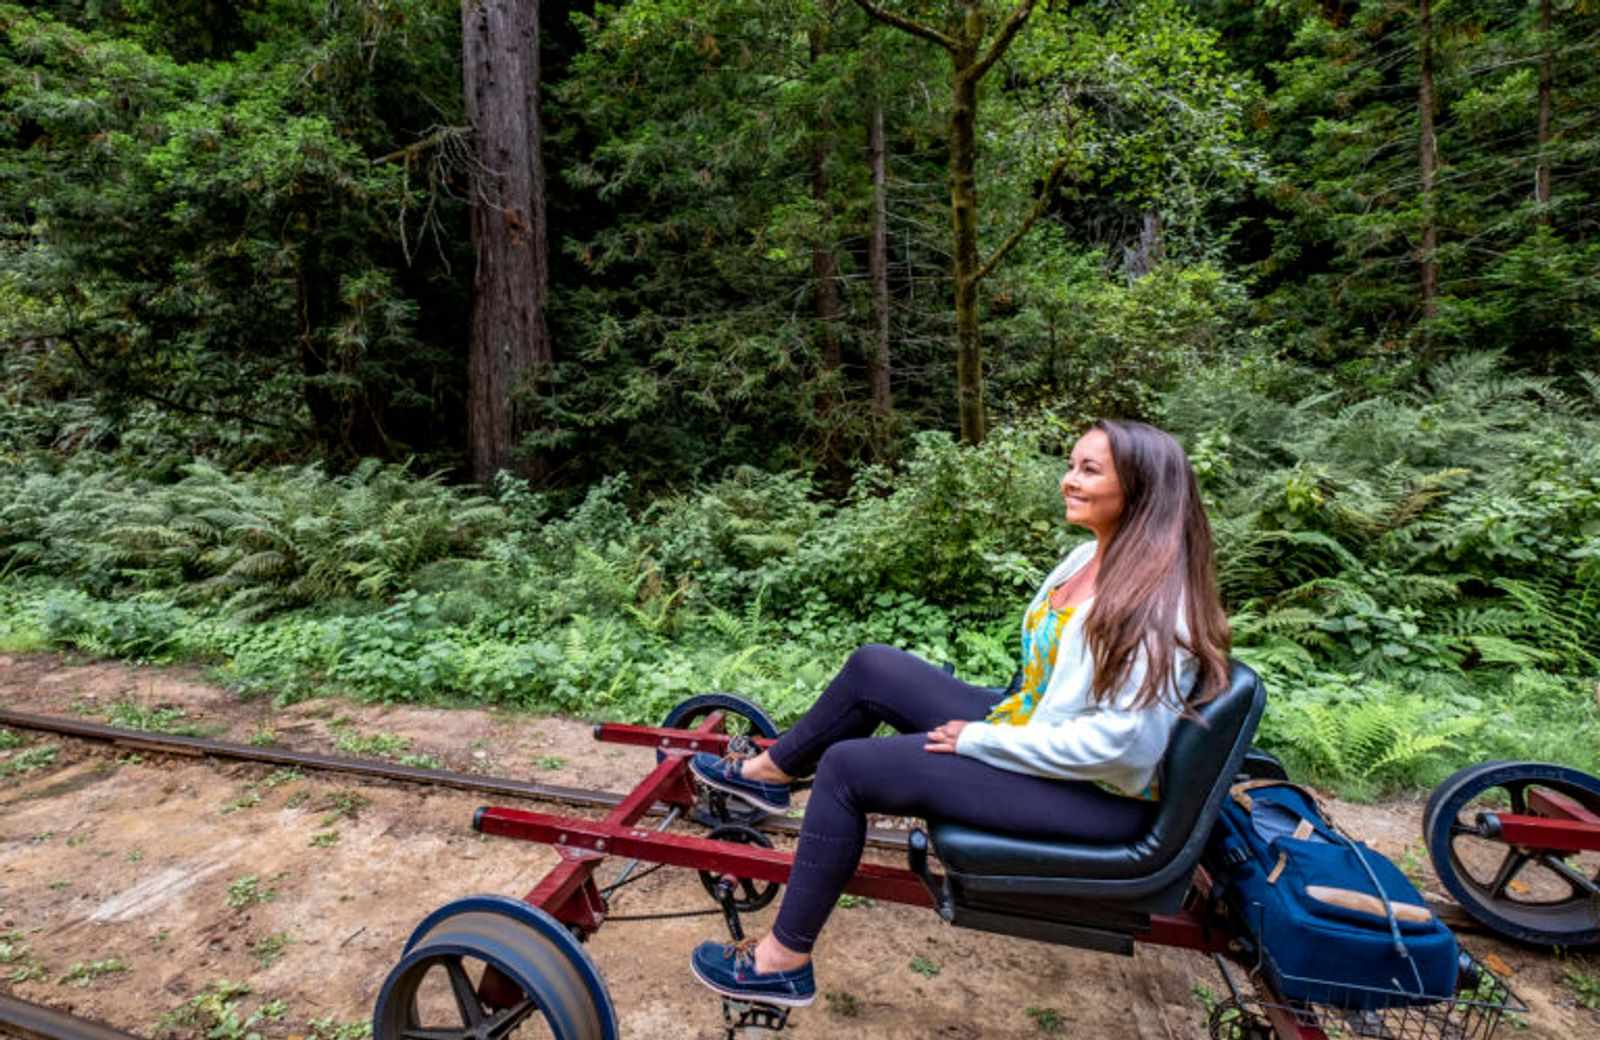 Rail biking is an exciting thing to do in Northern California